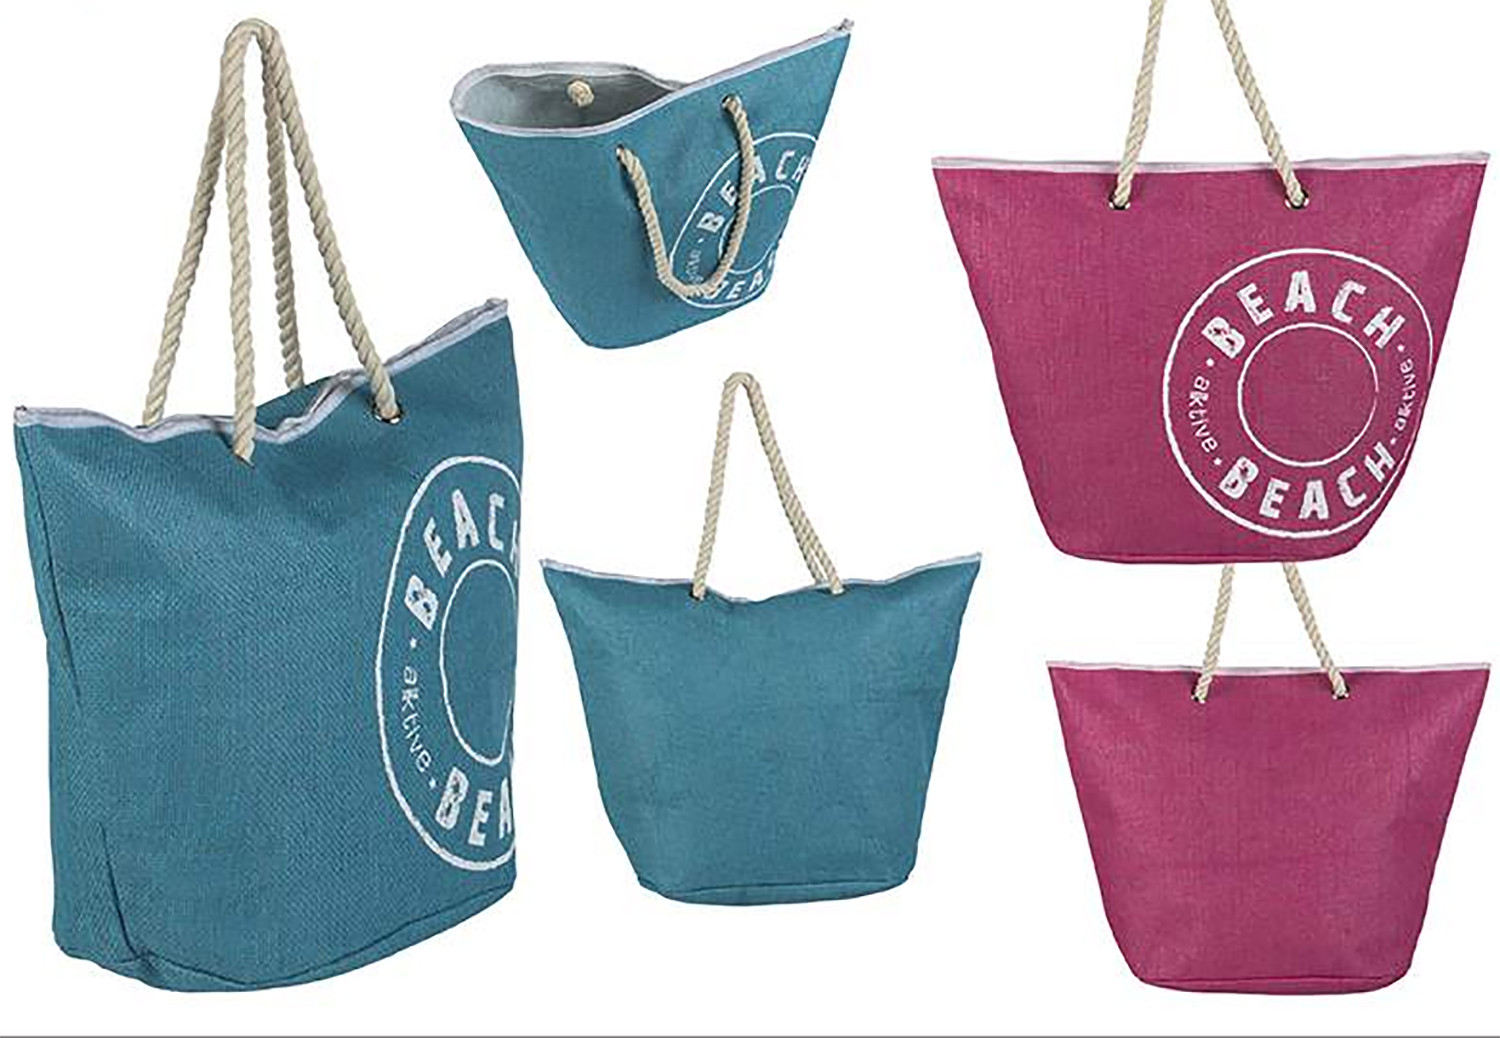 Beach bag with Handle Design Vintage Two-Color Home and More